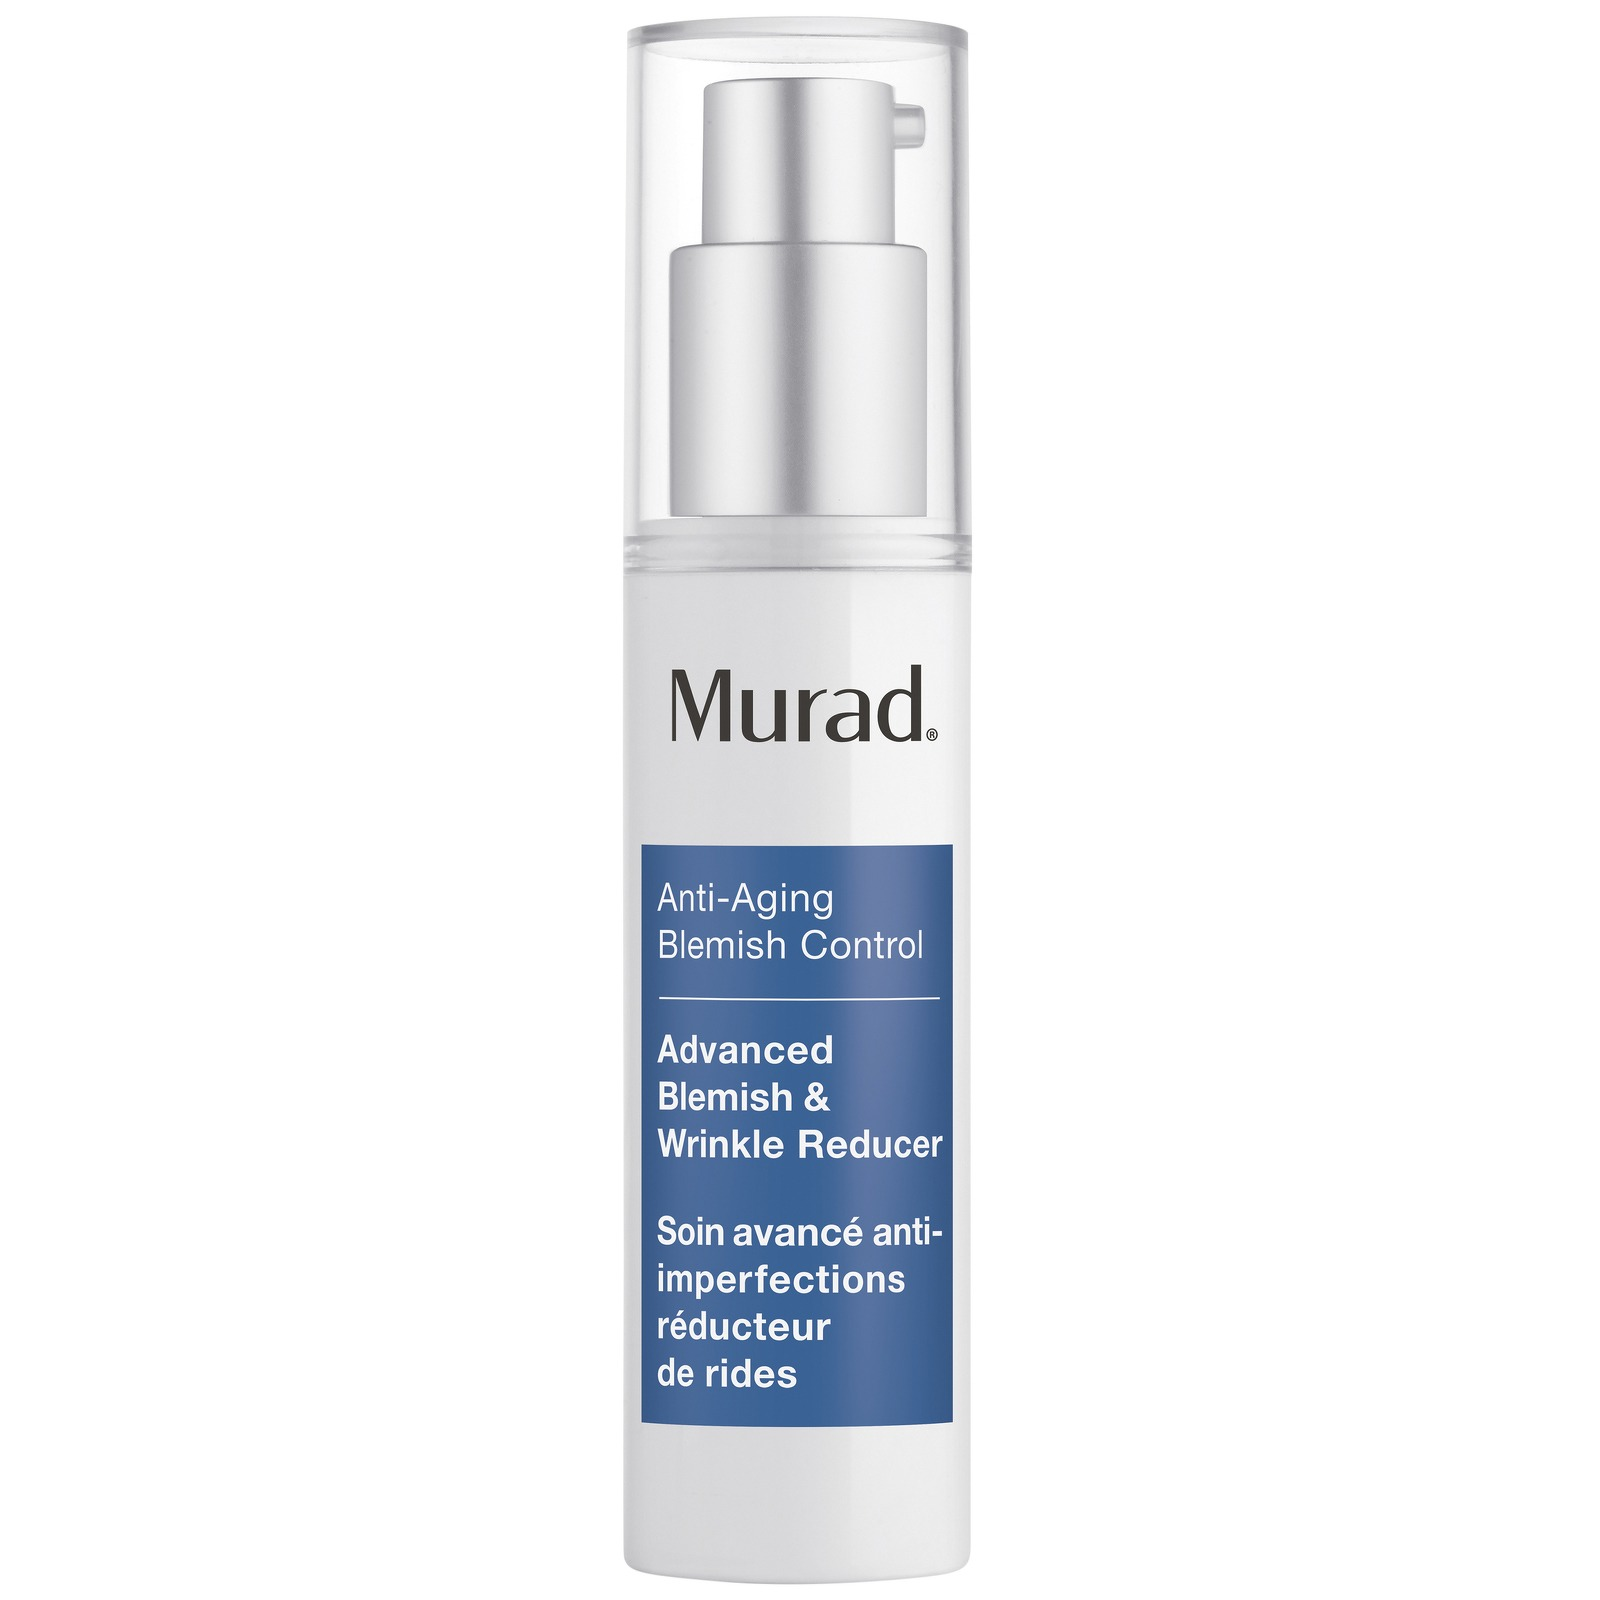 Murad Anti-Ageing Blemish Control Advanced Blemish & Wrinkle Reducer 30ml